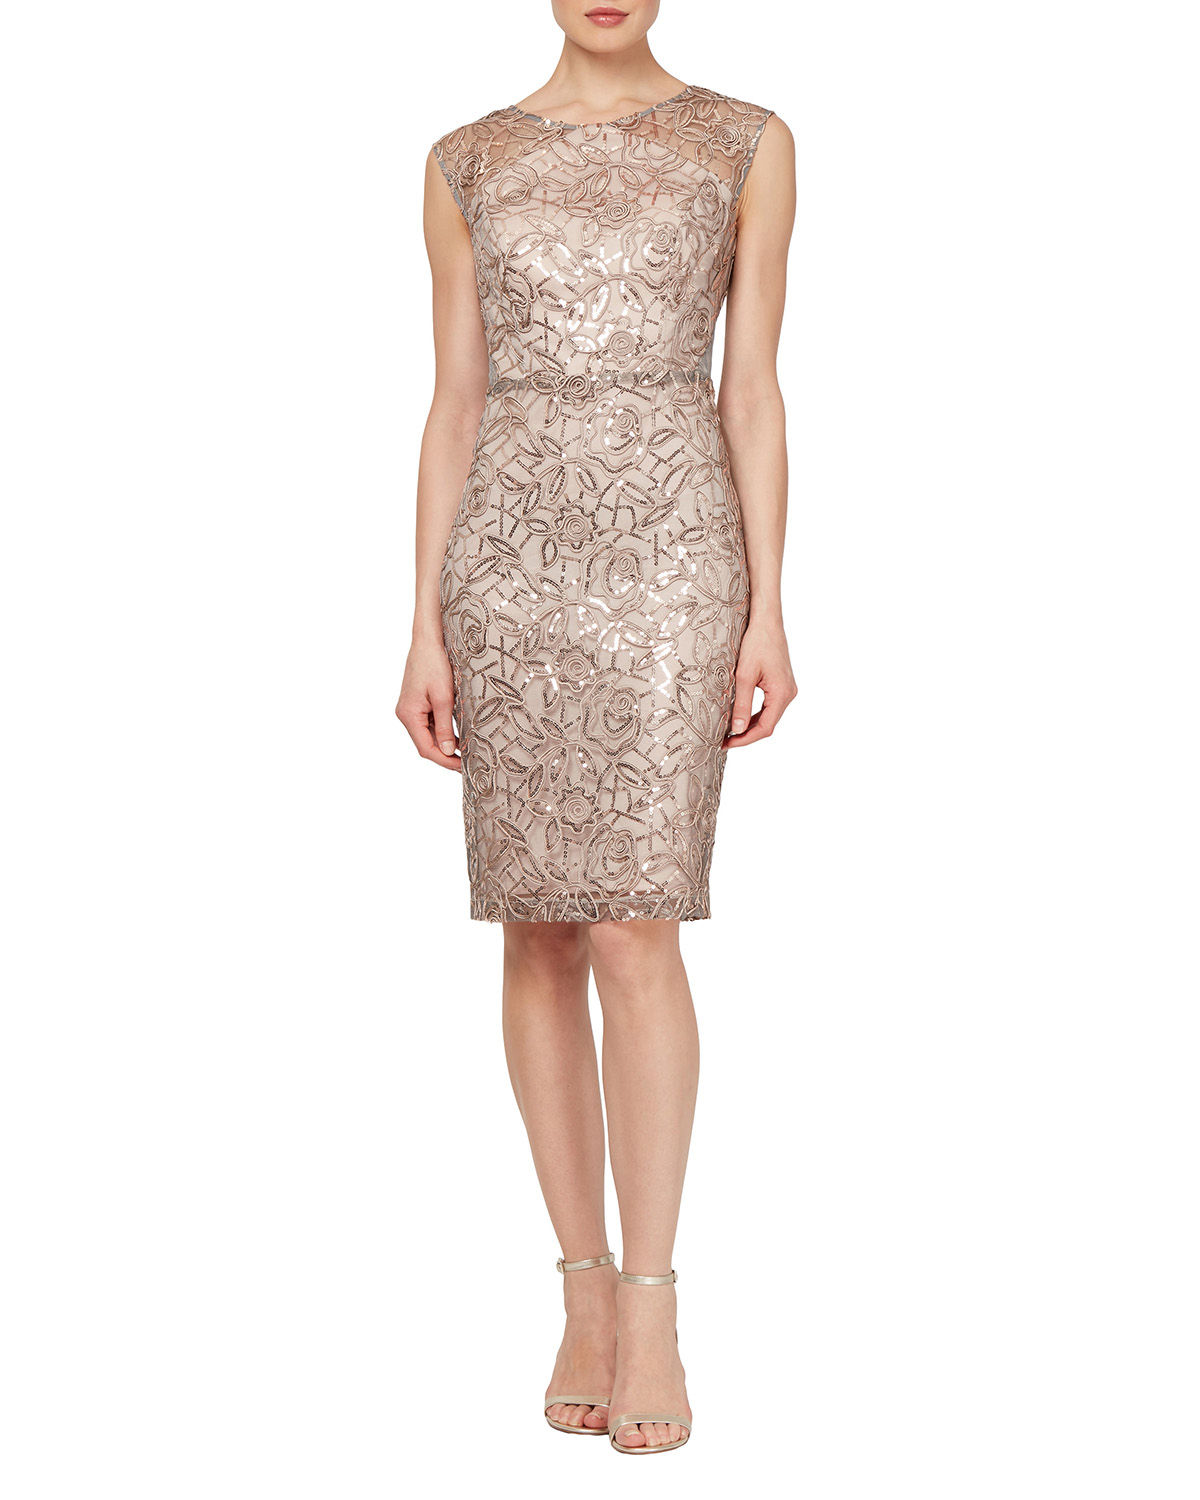 Floral-Embroidered Sequined Cocktail Dress